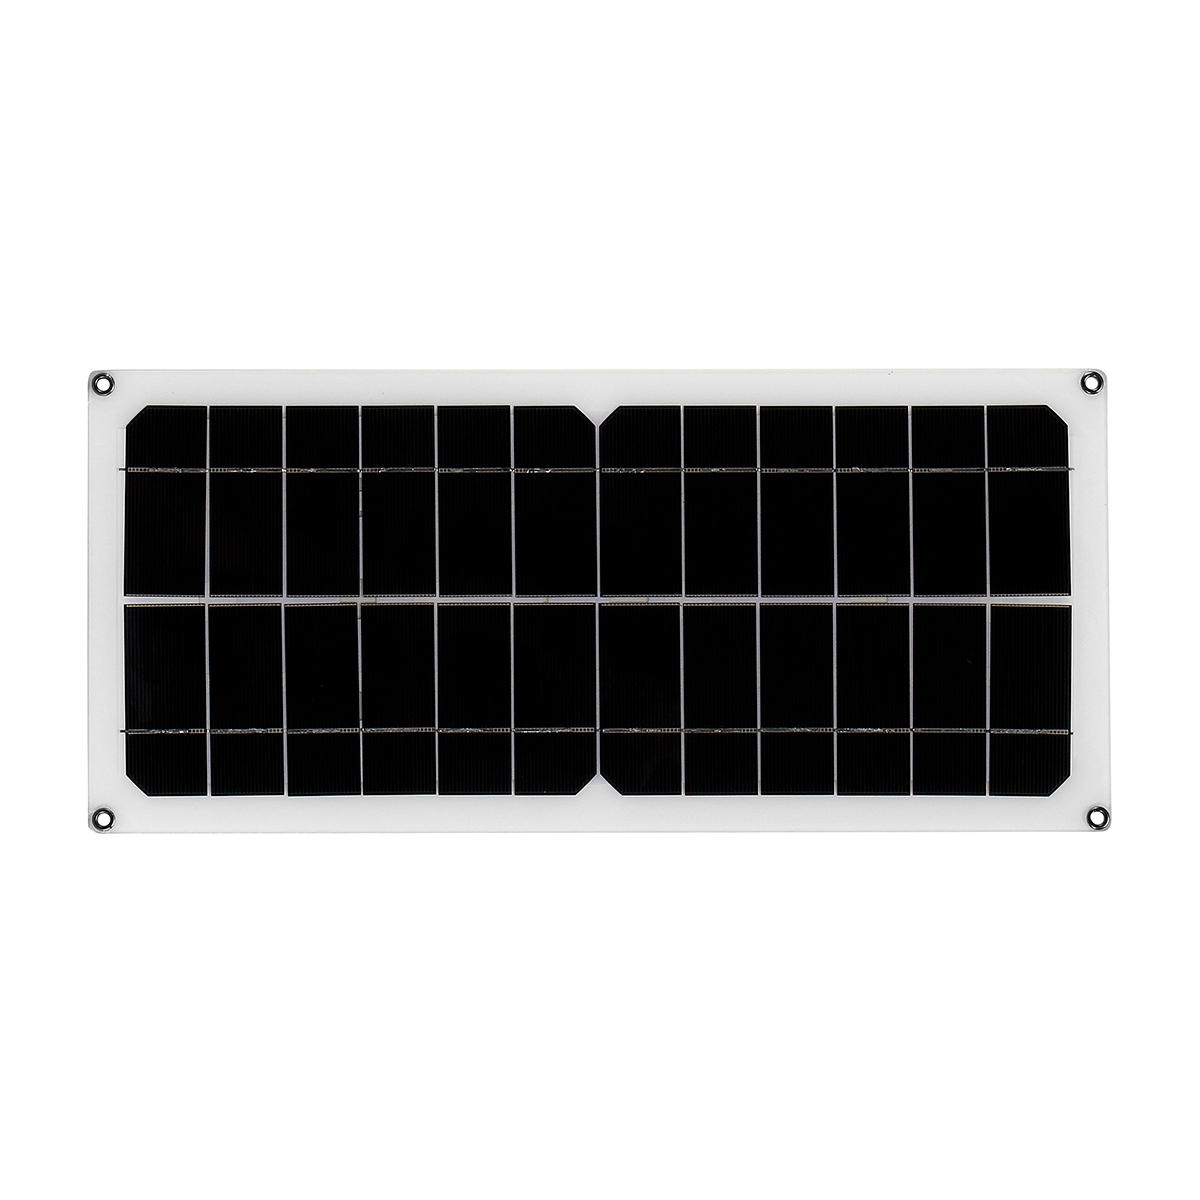 Us 22 71 Sp 10w 420 190 2 5mm Flexible Monocrystalline Solar Panel With Rear Junction Box Usb Cable Arduino Compatible Scm Diy Kits From Electronics On Bangg Monocrystalline Solar Panels Solar Panels Usb Cable